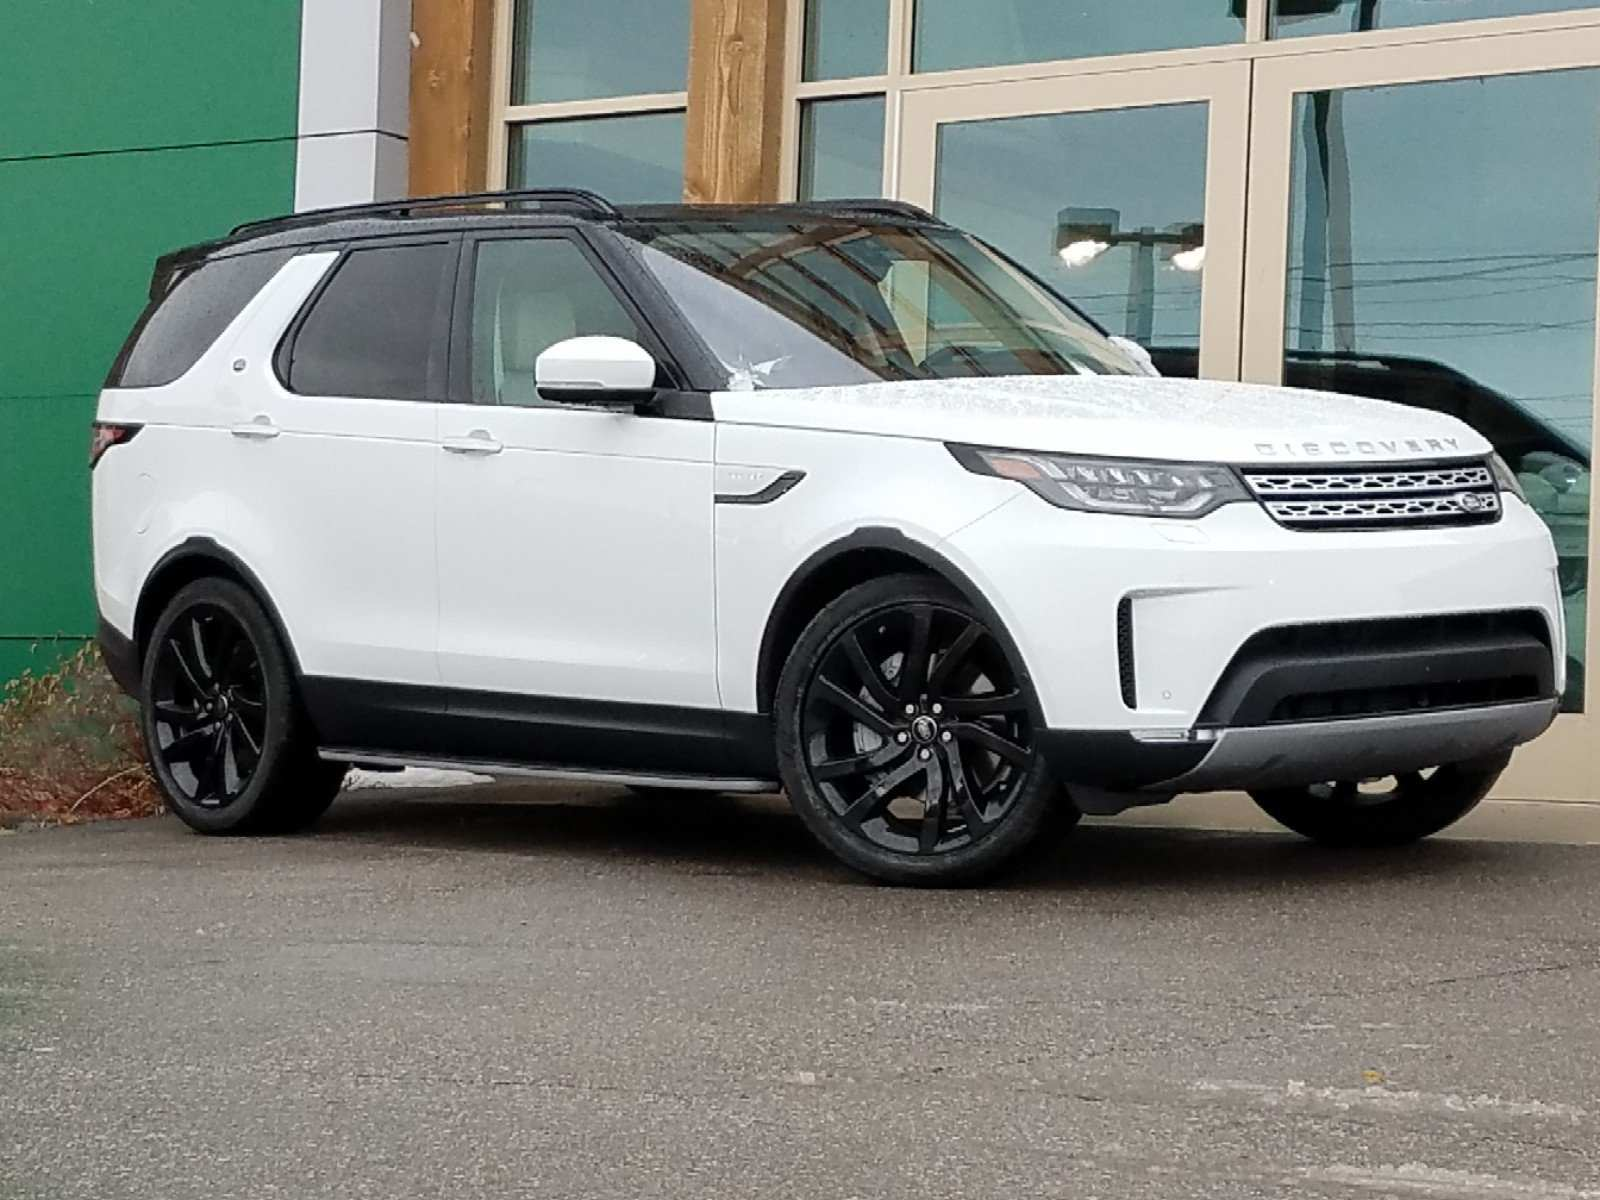 80 All New 2019 Land Rover Lr4 History by 2019 Land Rover Lr4